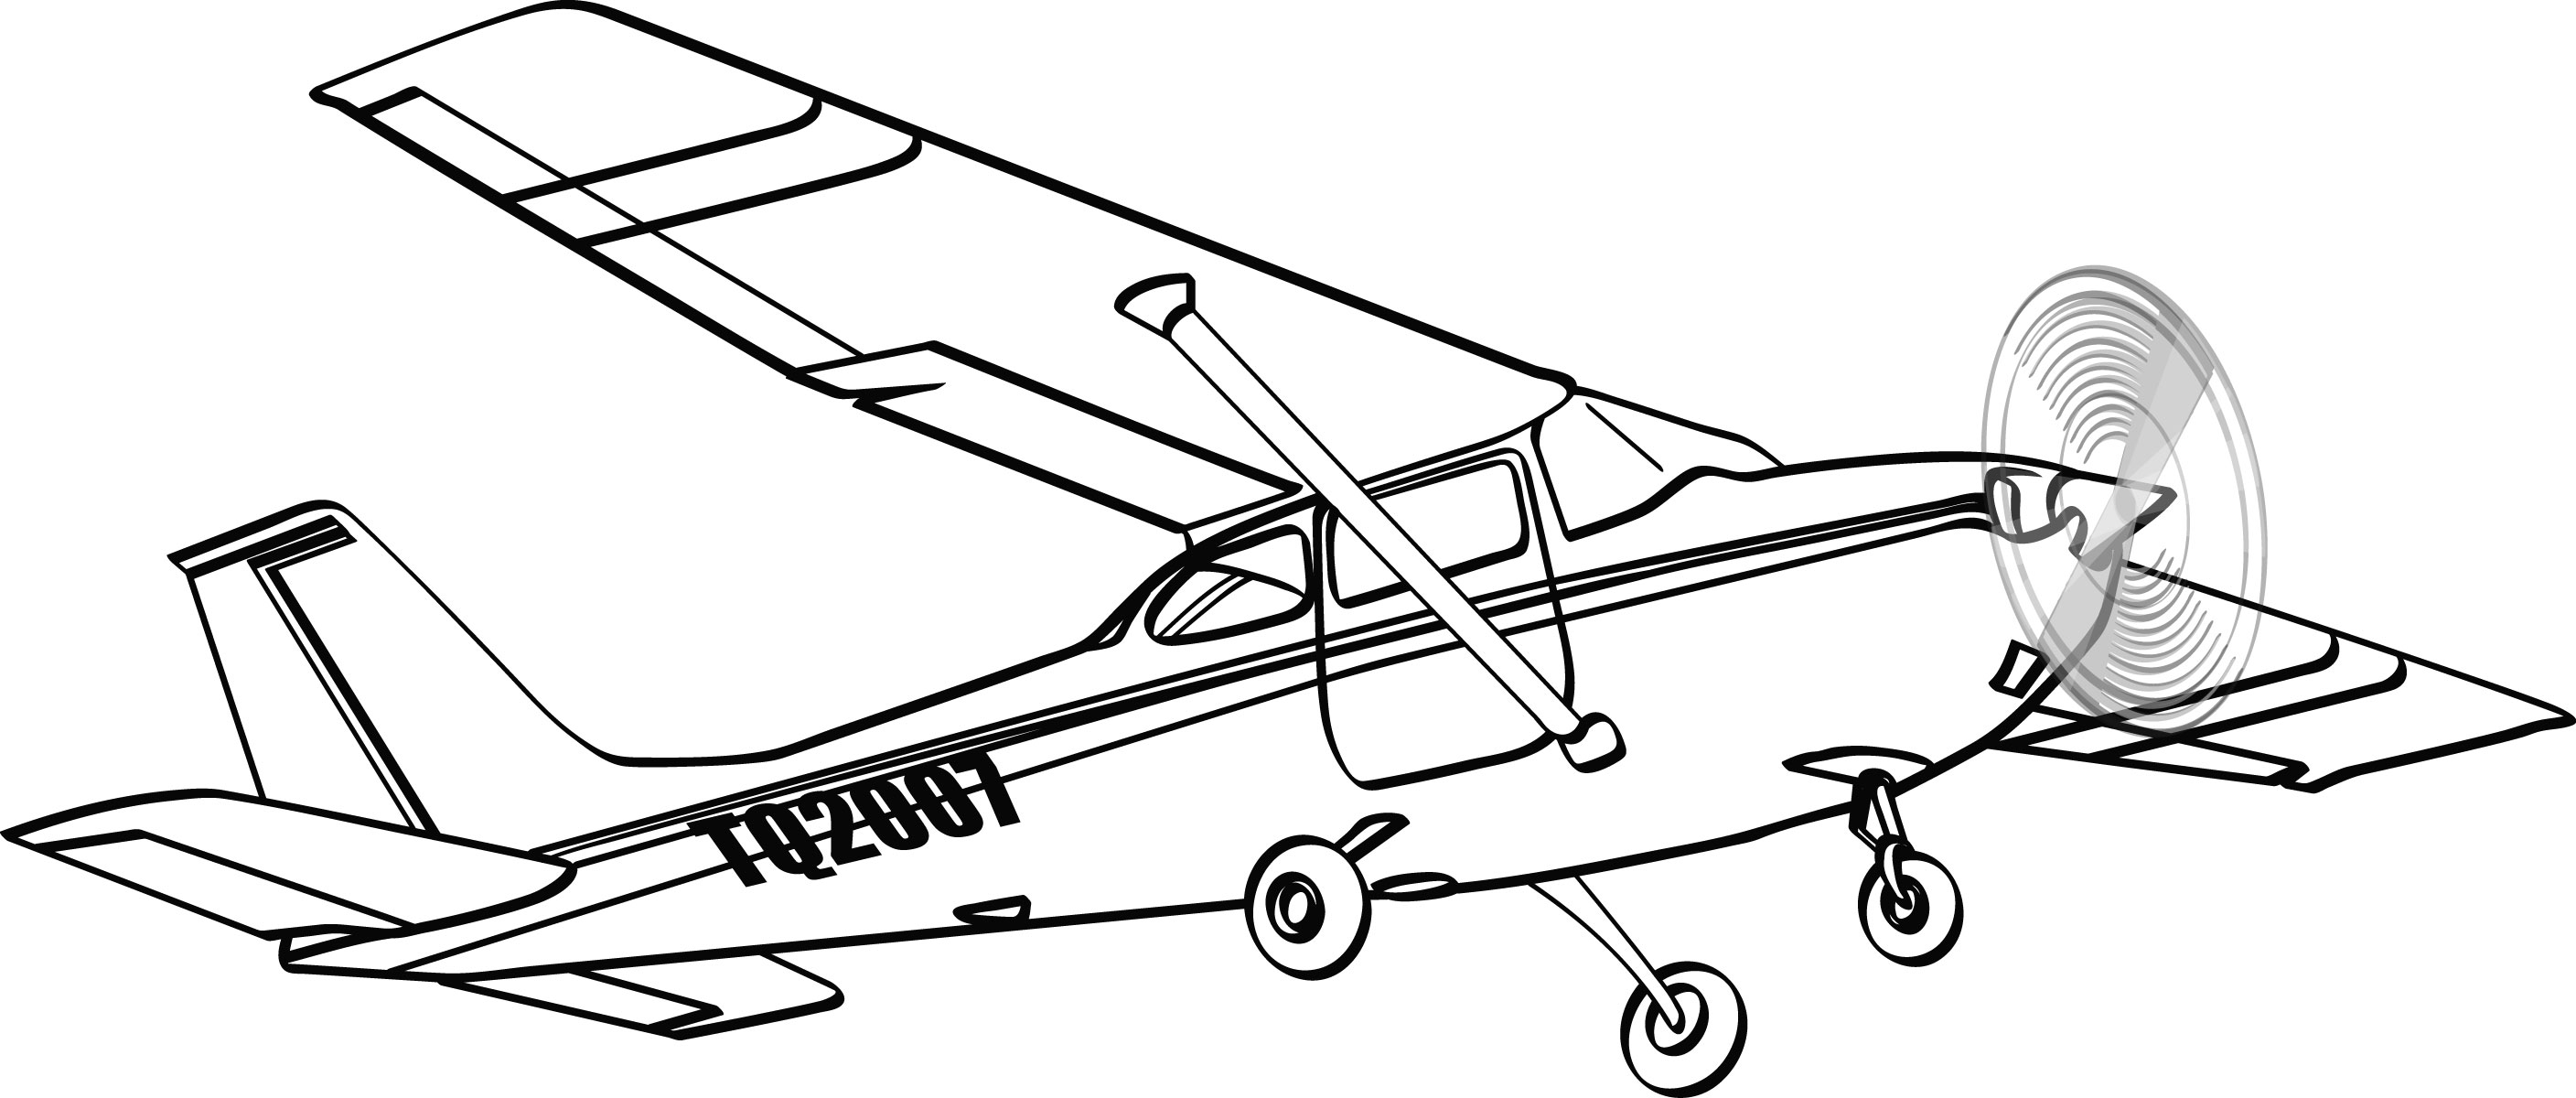 Clipart Cessna 406 Clipart Collection Download This Image As